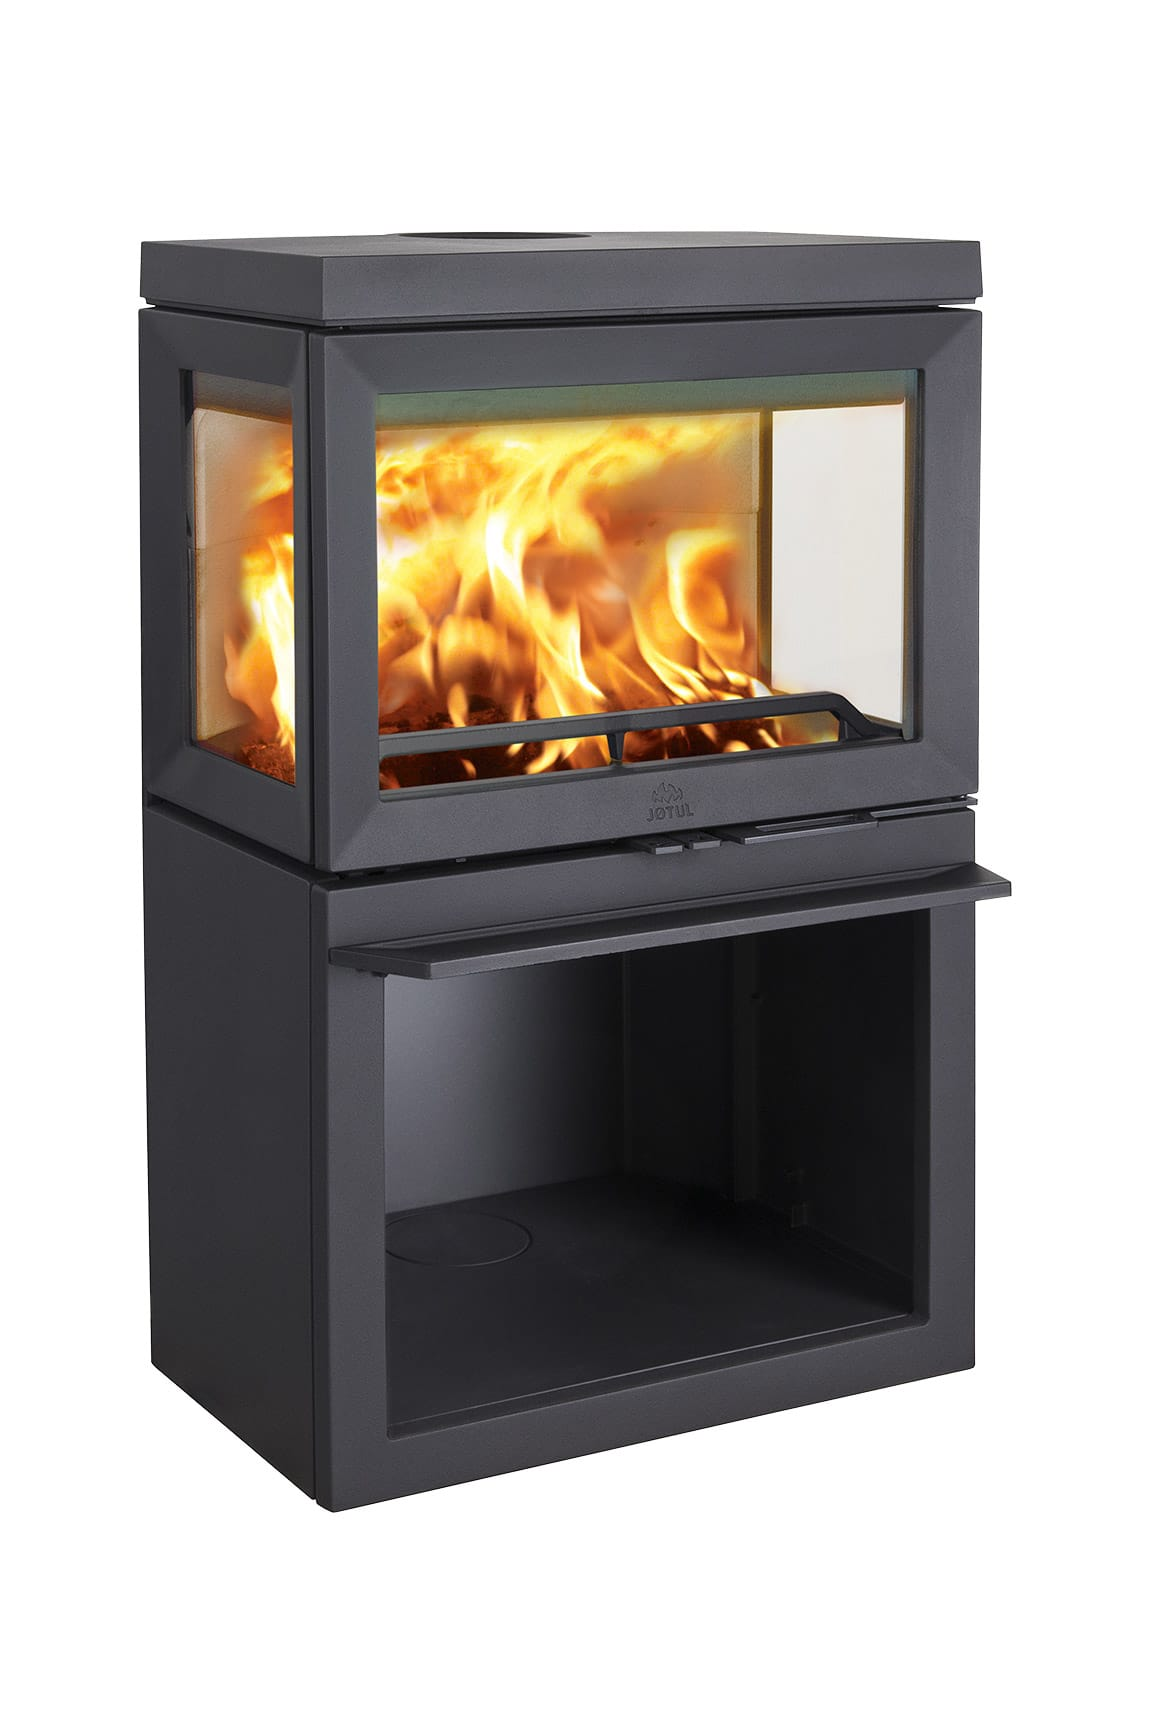 po le bois jotul f 520 origine rouen. Black Bedroom Furniture Sets. Home Design Ideas